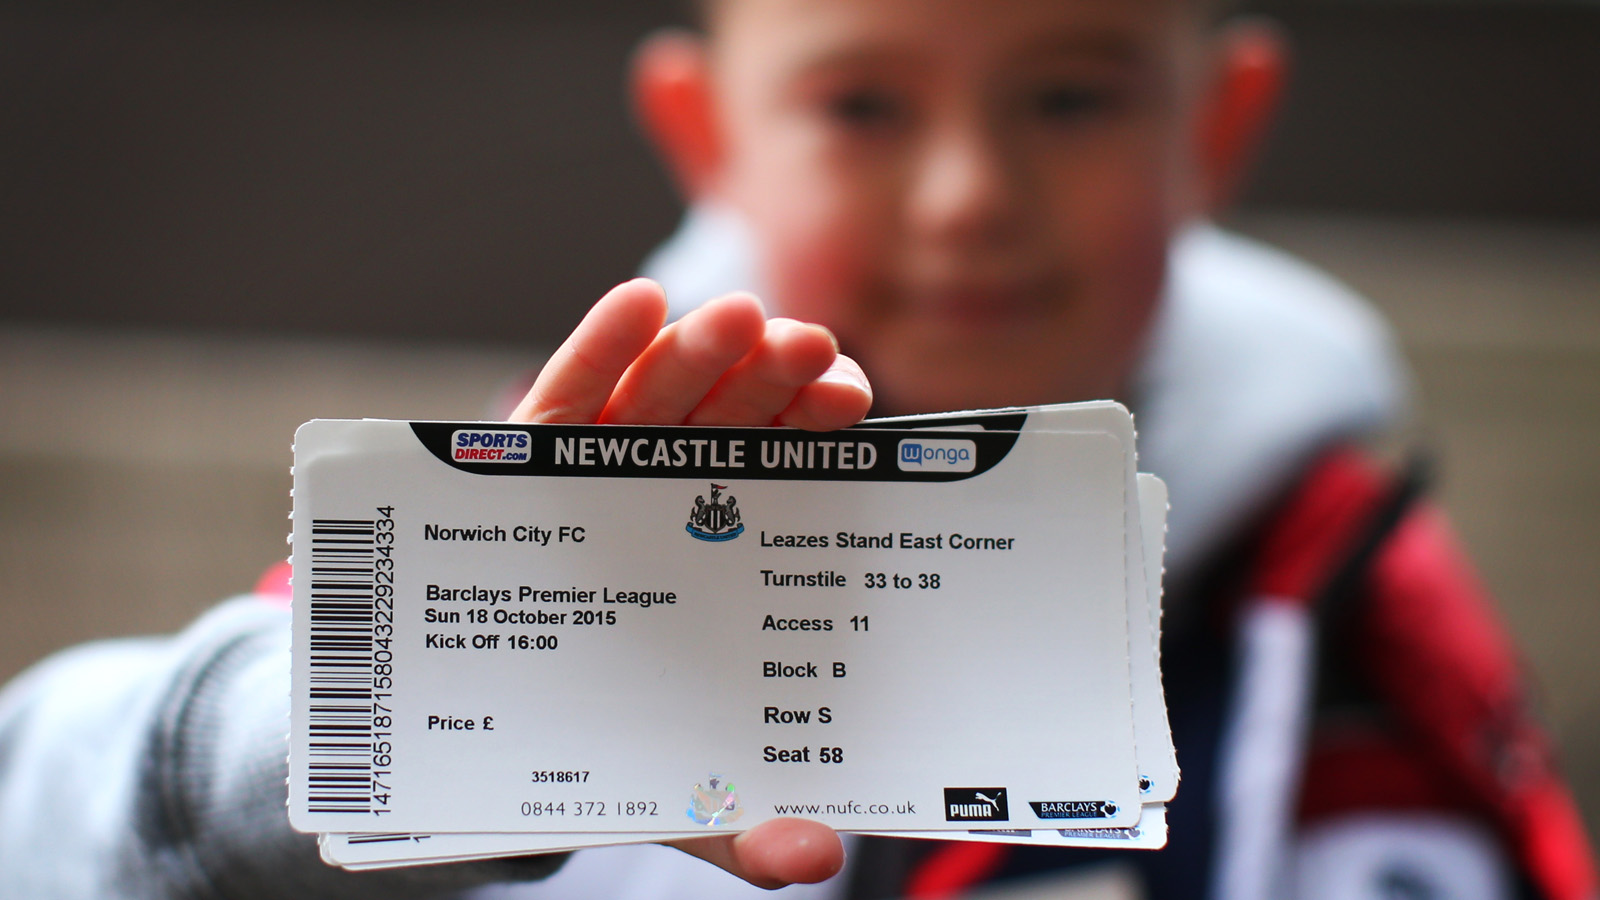 NEWCASTLE, ENGLAND - OCTOBER 18:  A young Newcastle fan shows off  his match ticket during the Barclays Premier League match between Newcastle United and Norwich City at St James Park on October 18, 2015 in Newcastle, England. (Photo by Ian MacNicol/Getty images)